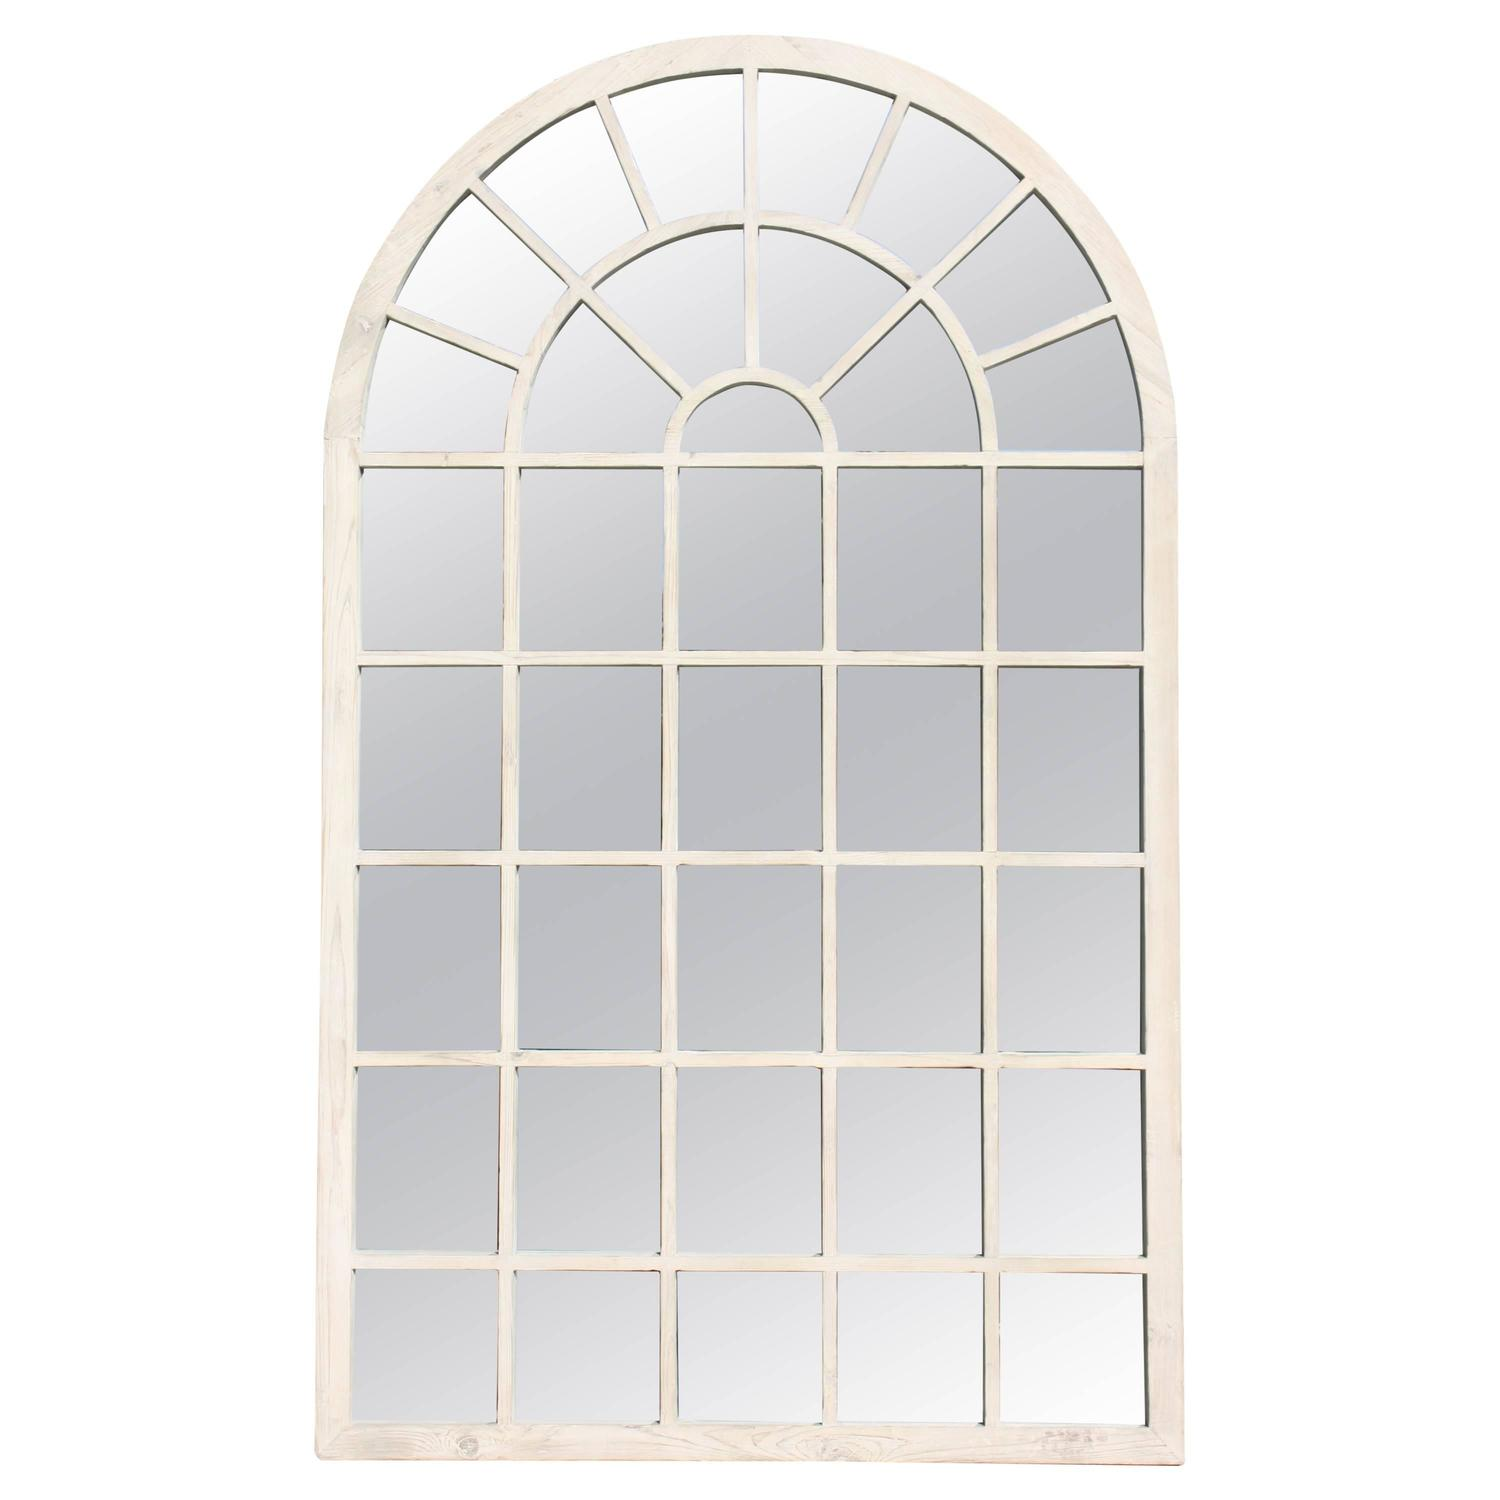 Arched Window Frame Images Galleries